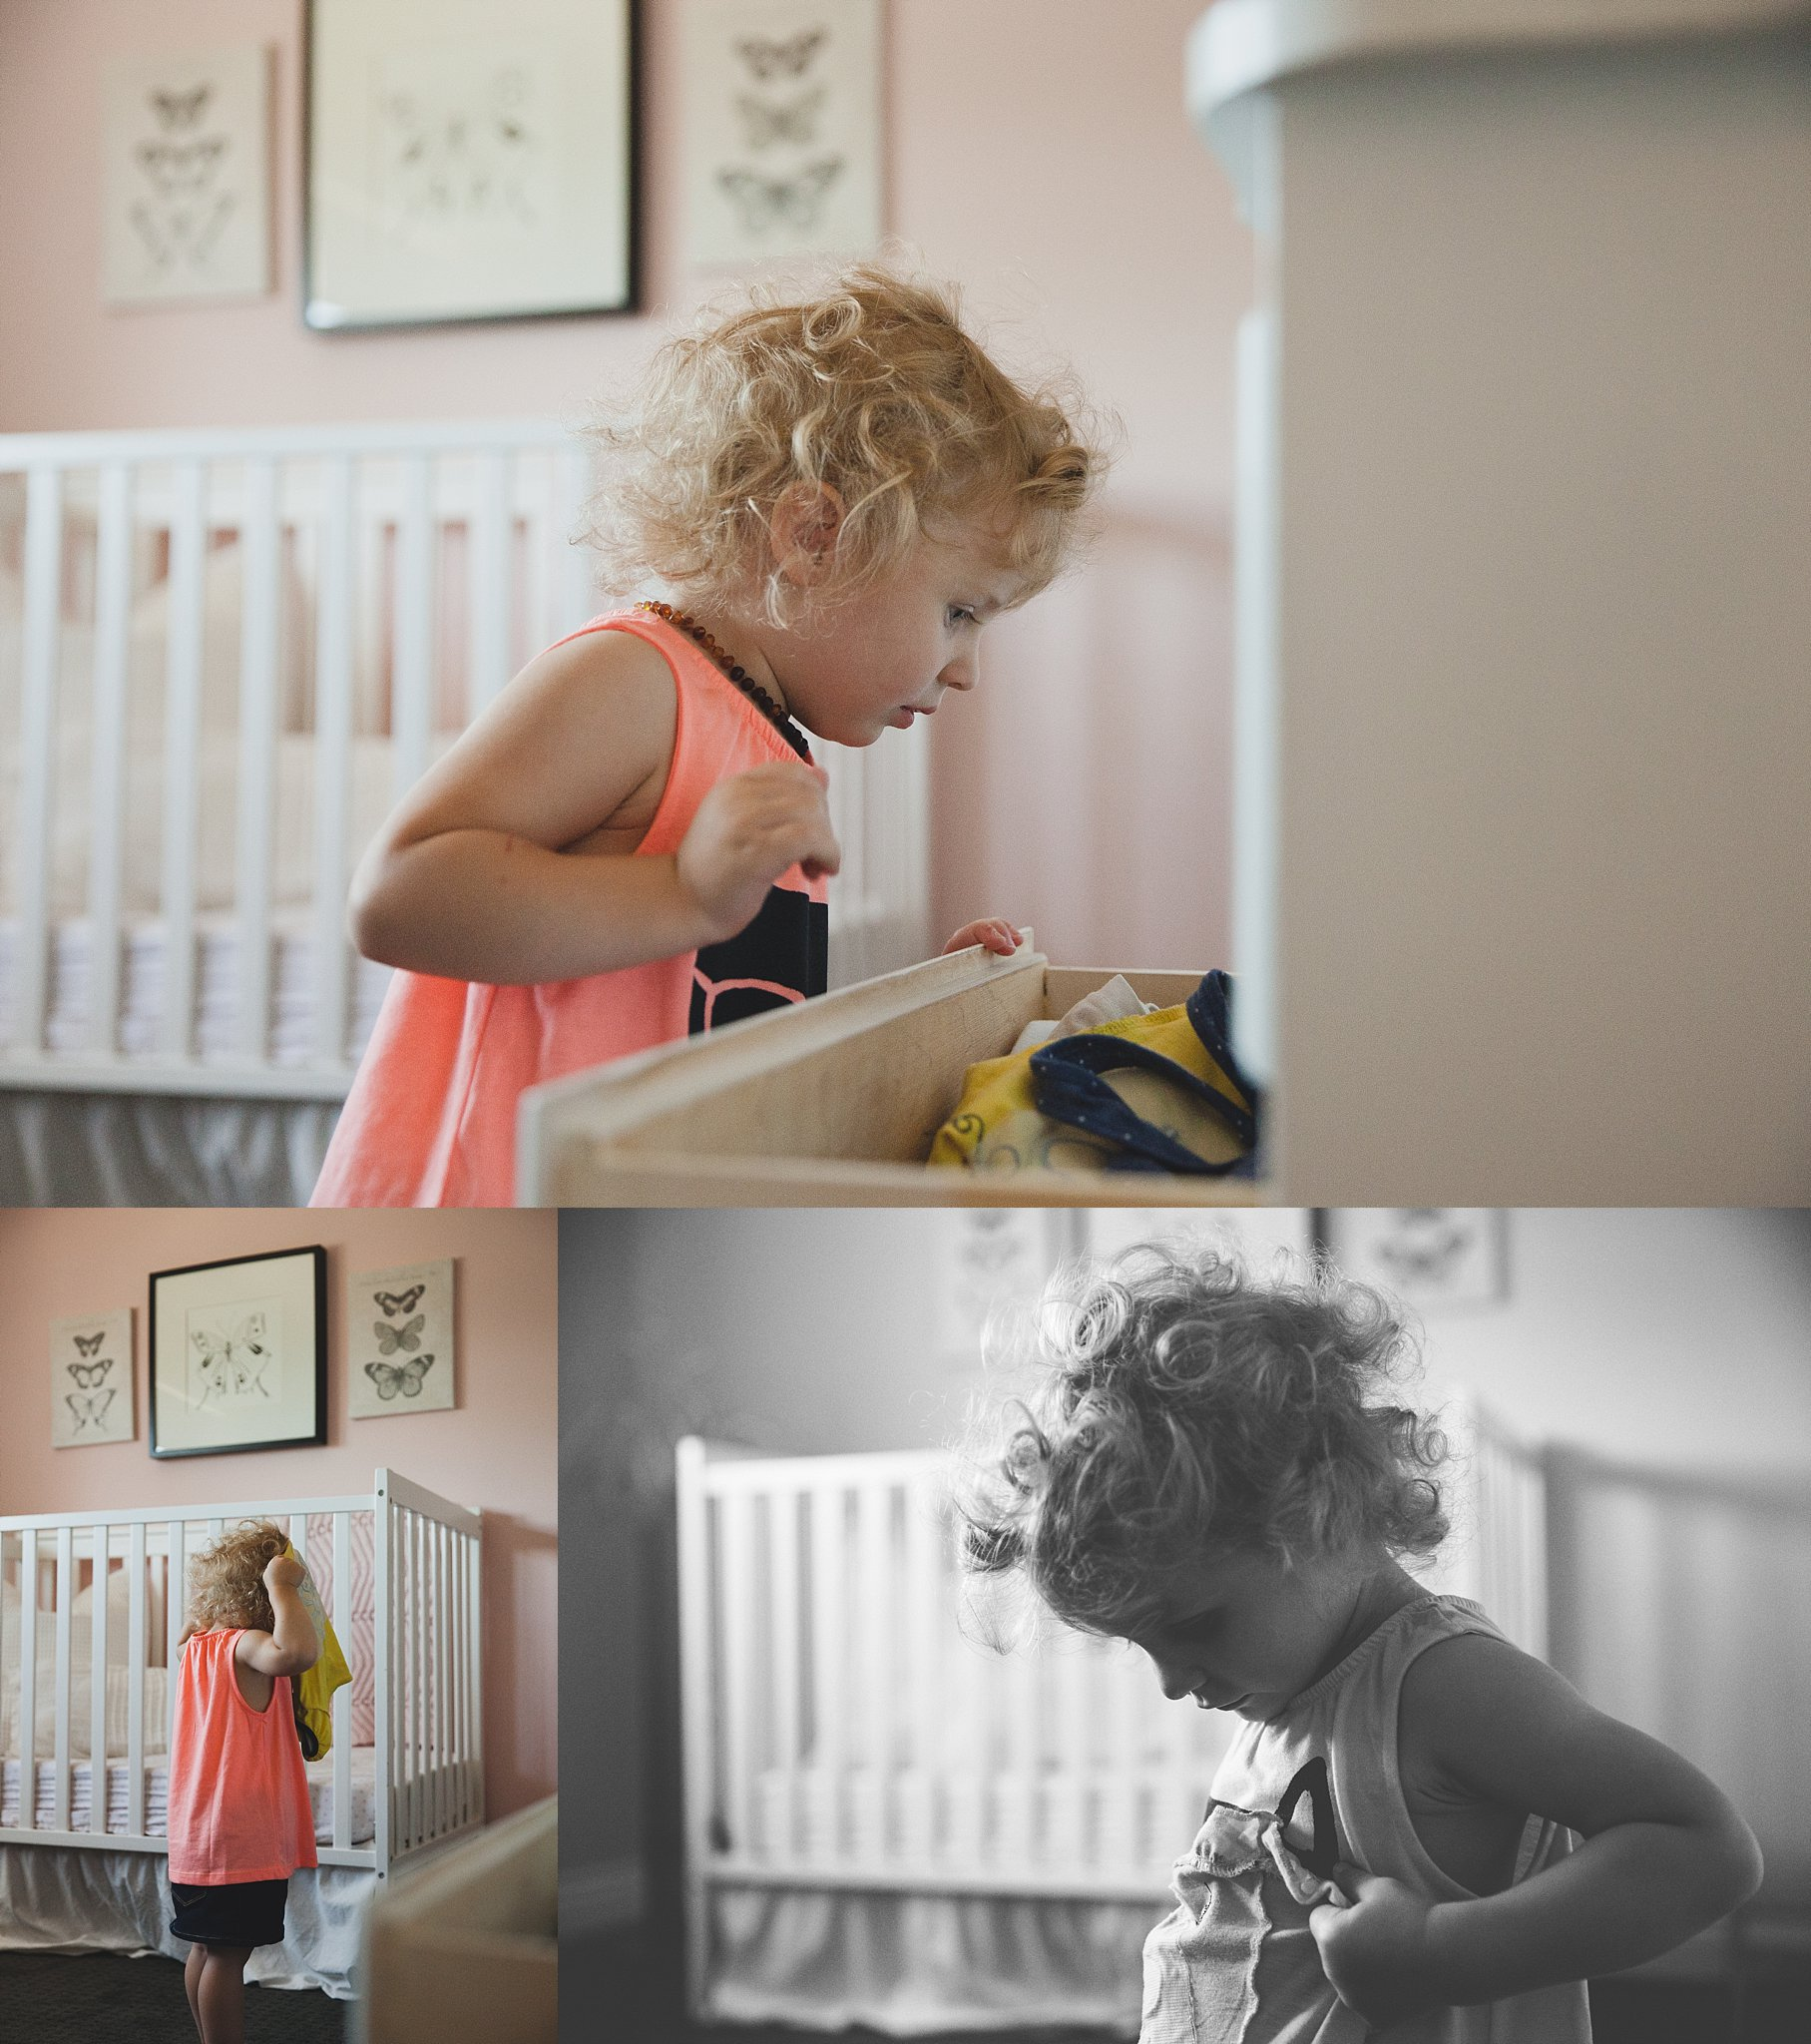 Toddler playing dress-up in her nursery. Photographed by Rachael Little Photography in Woodstock, Ontario.